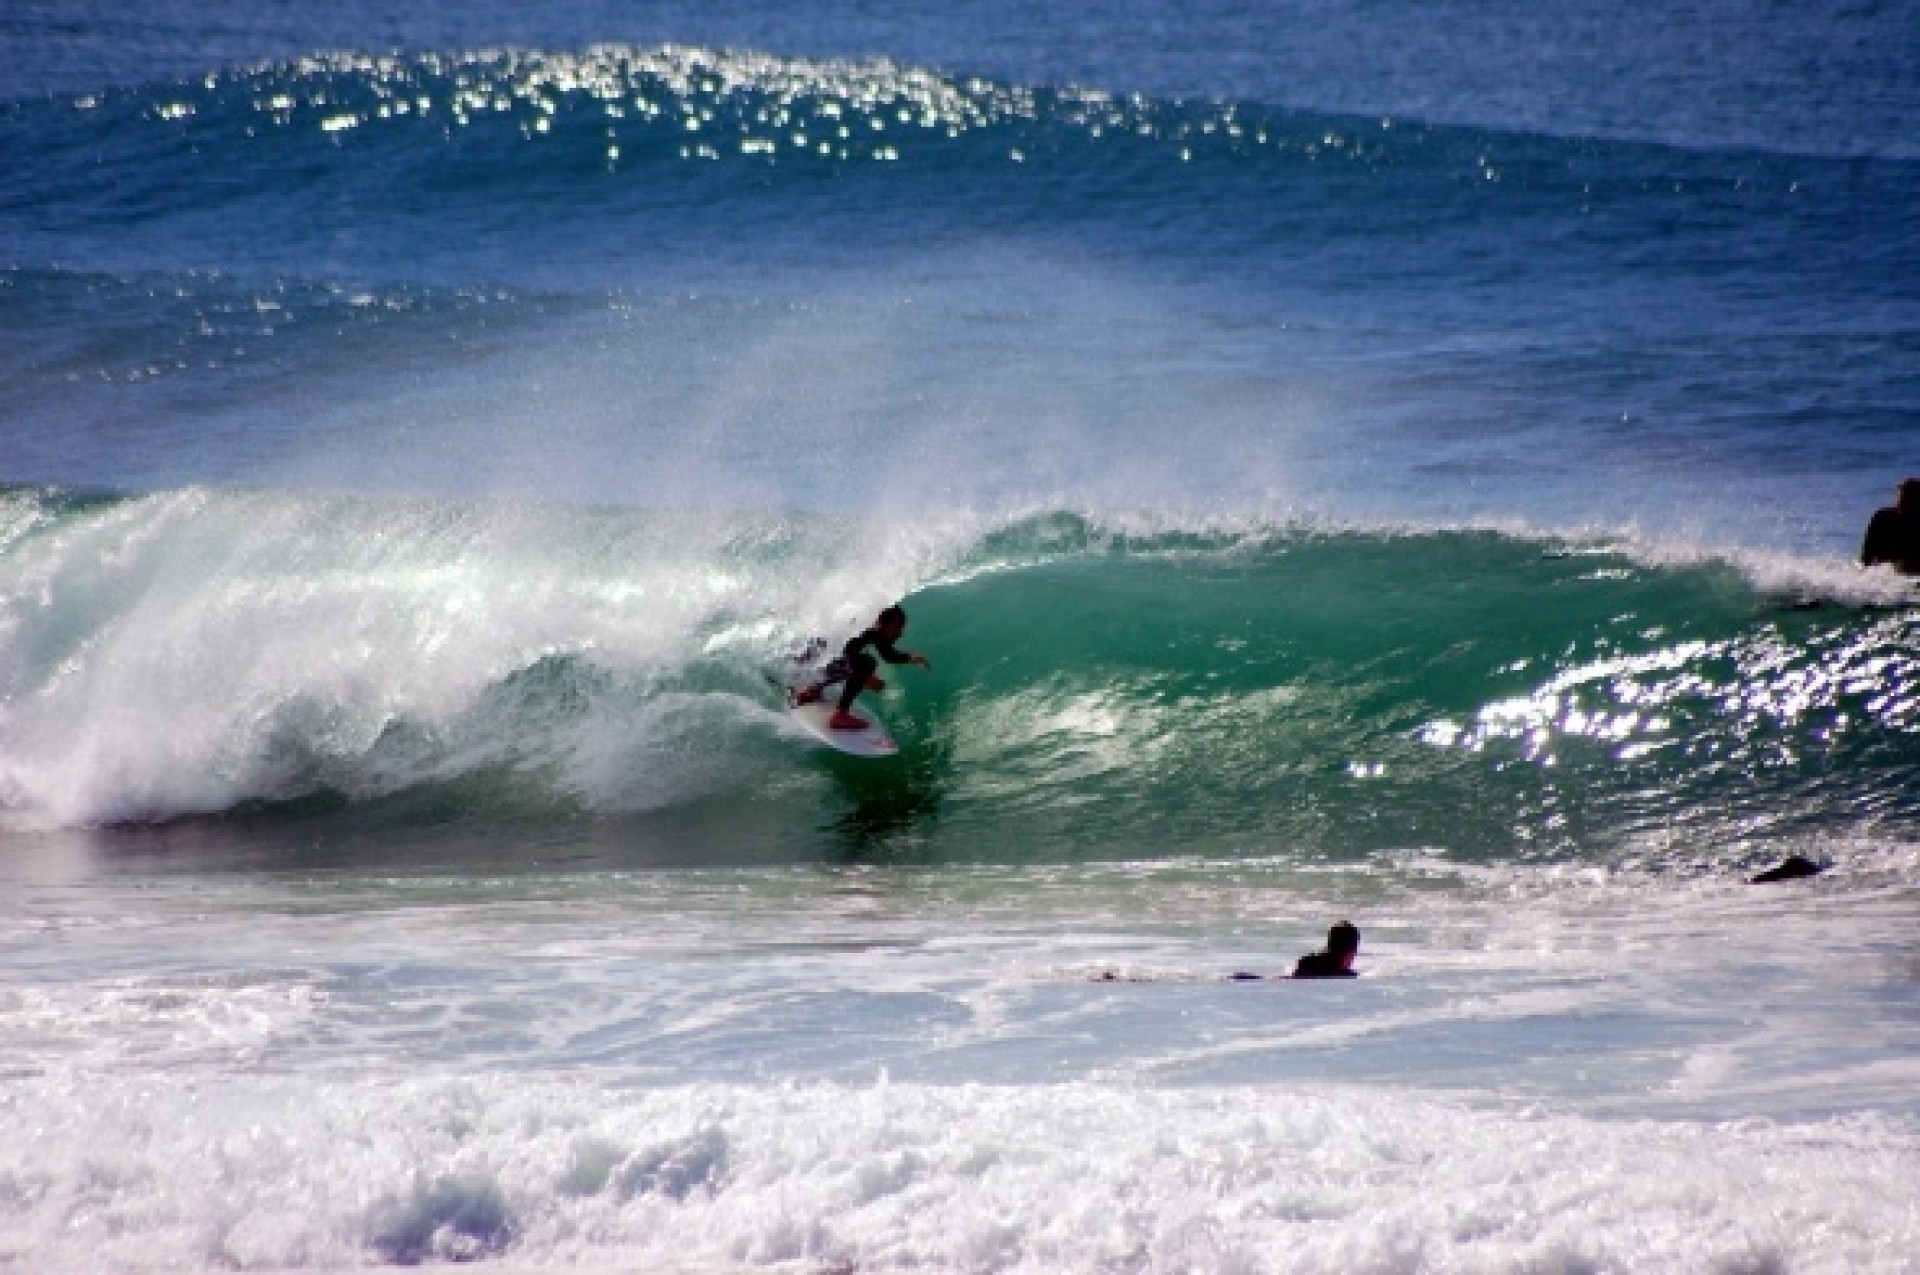 h2o holidays hossegor's photo of Hossegor (La Graviere)